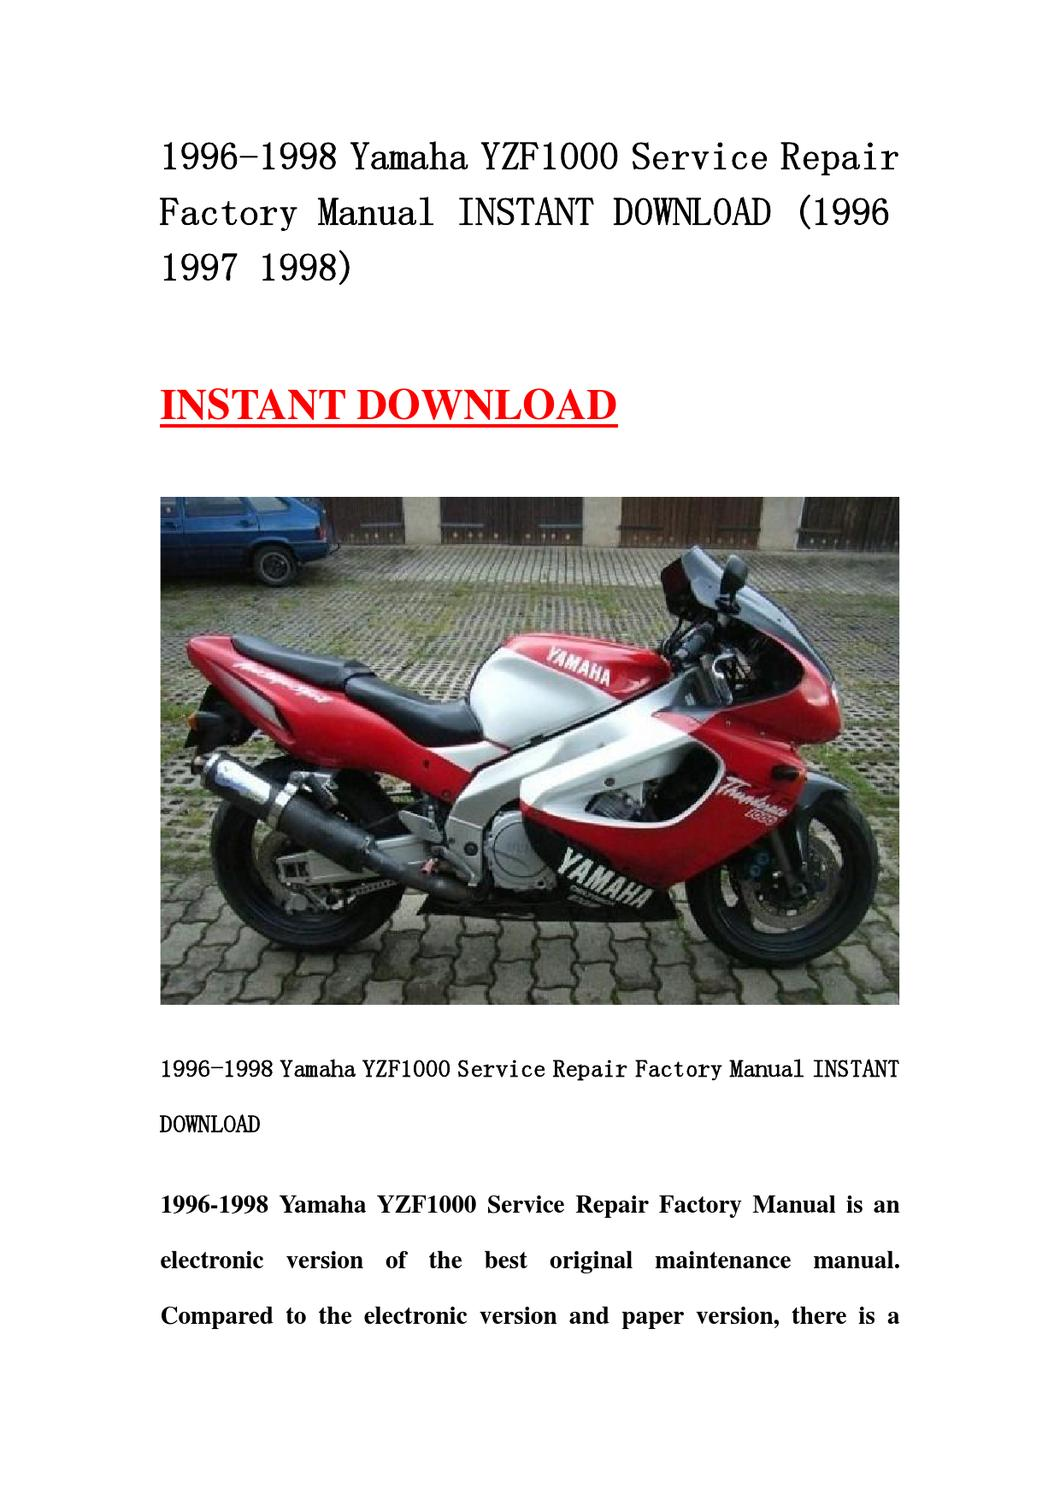 1996 1998 Yamaha Yzf1000 Service Repair Factory Manual border=